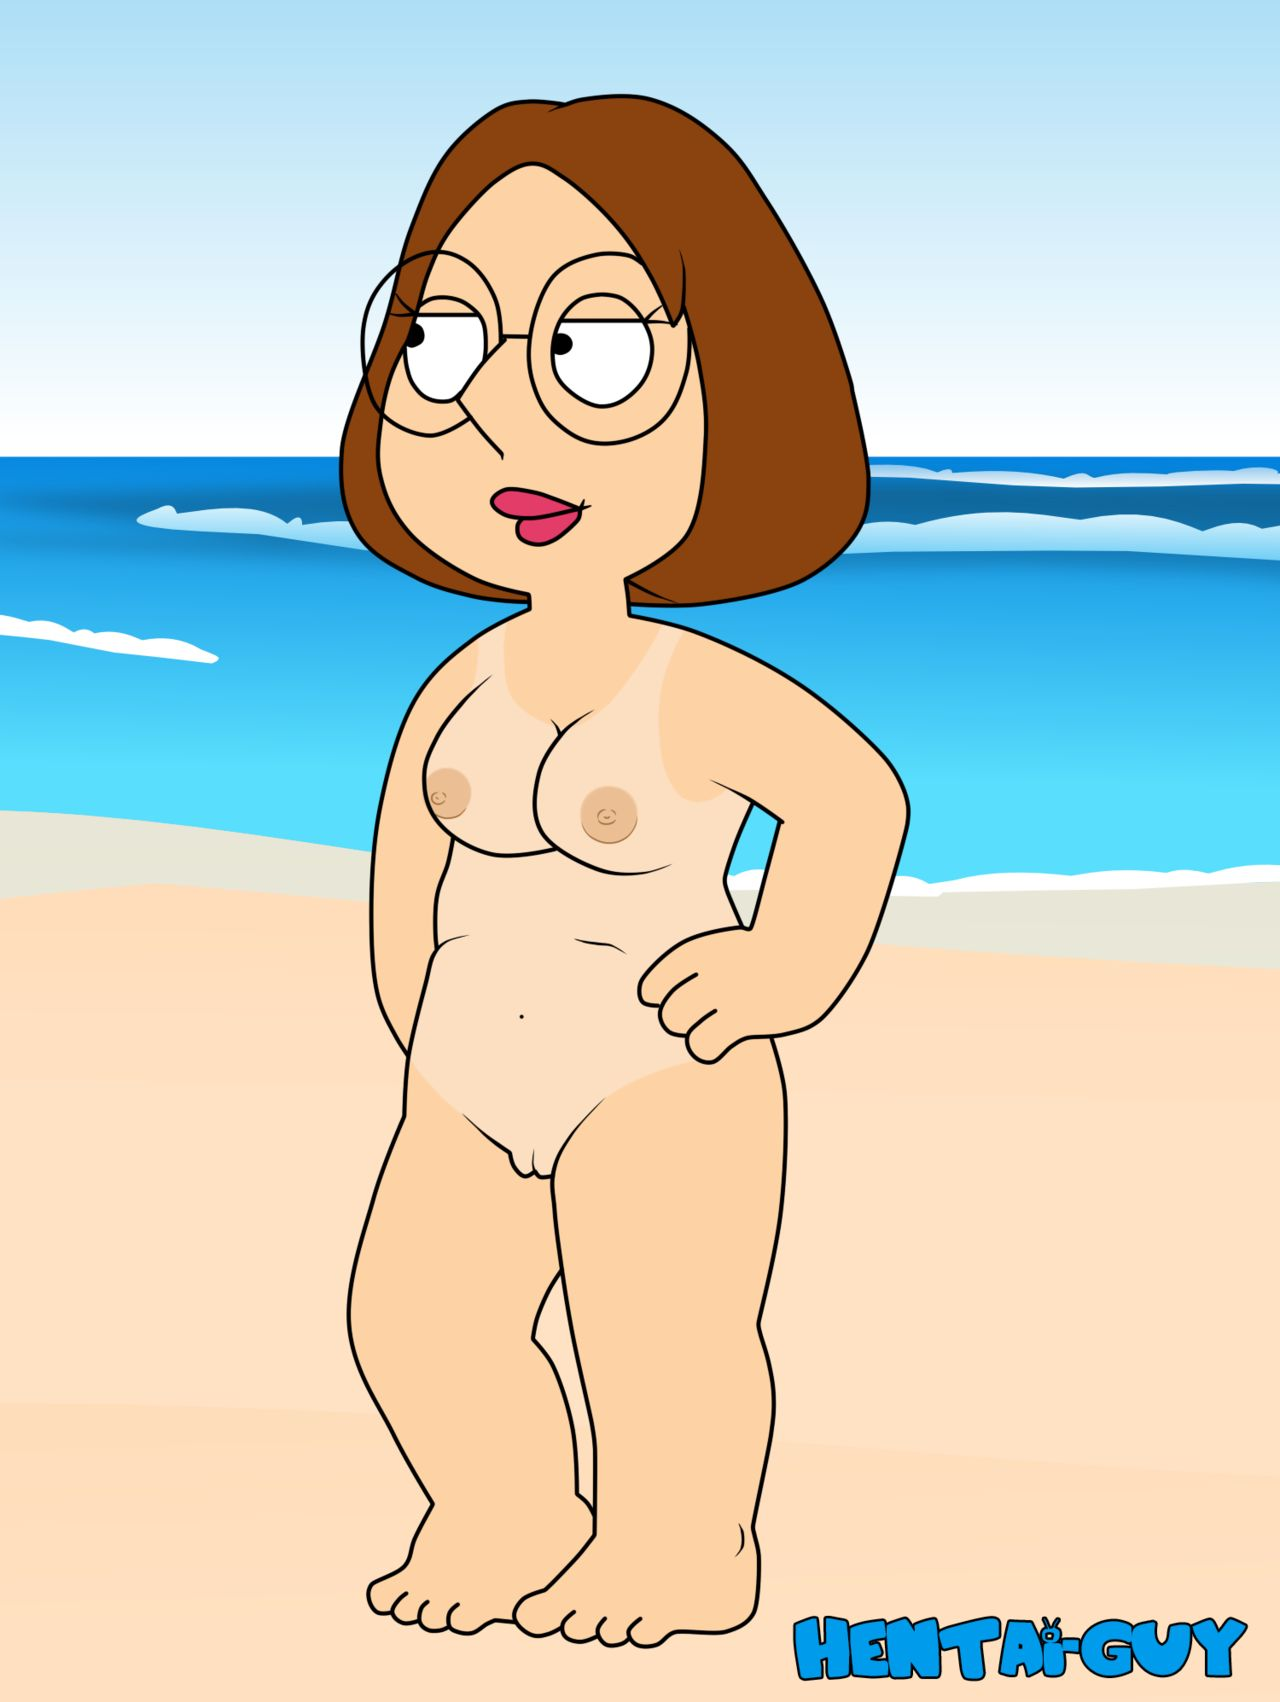 Real meg griffin nude, blister on bottom of bunny foot